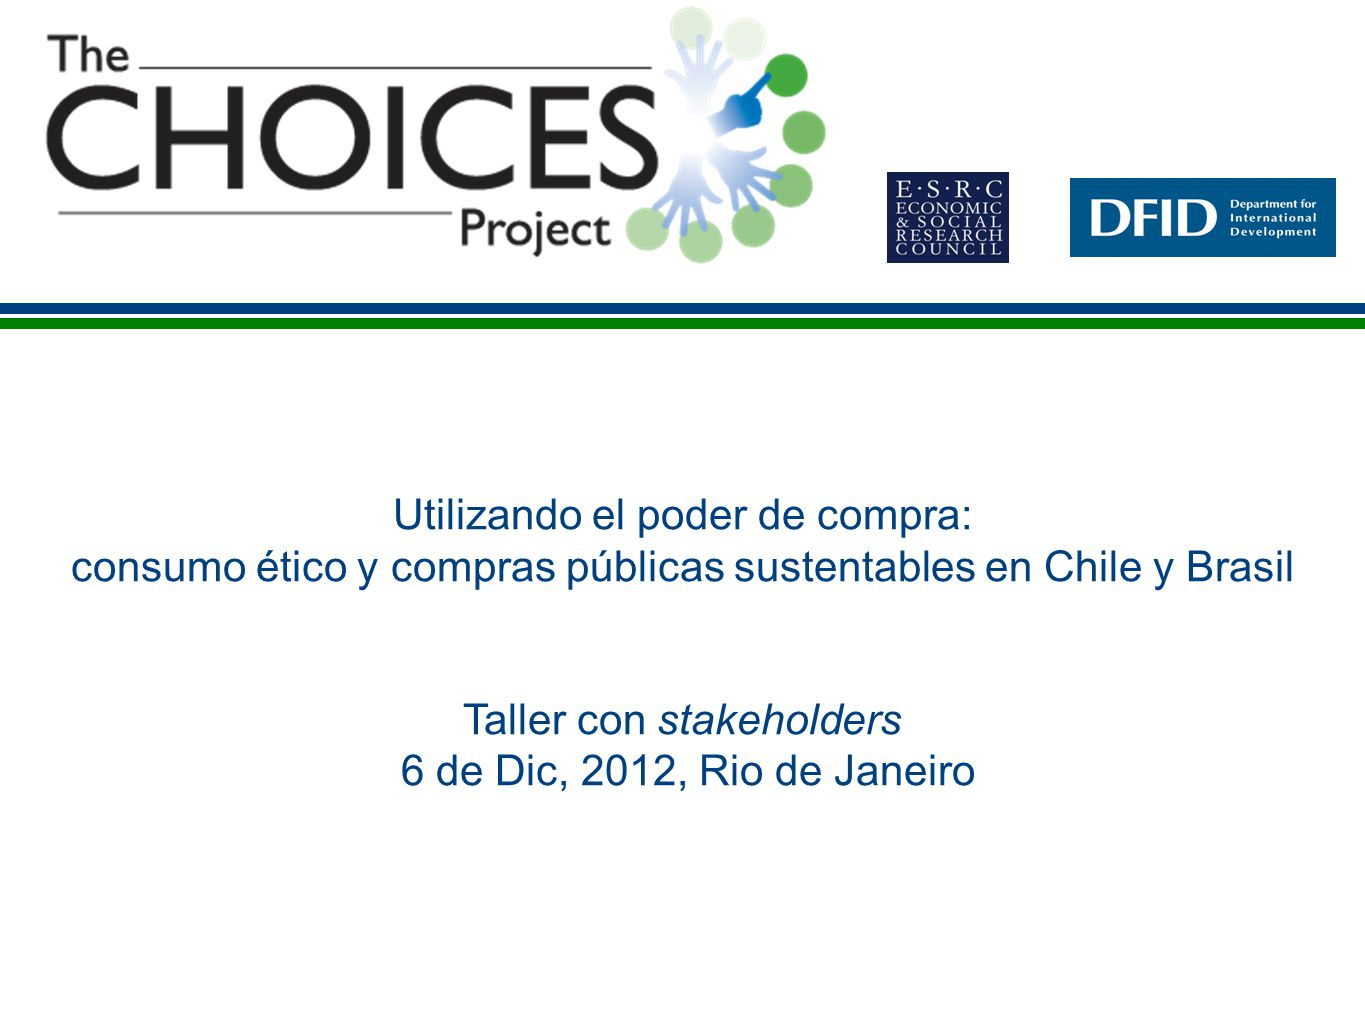 Taller con stakeholders